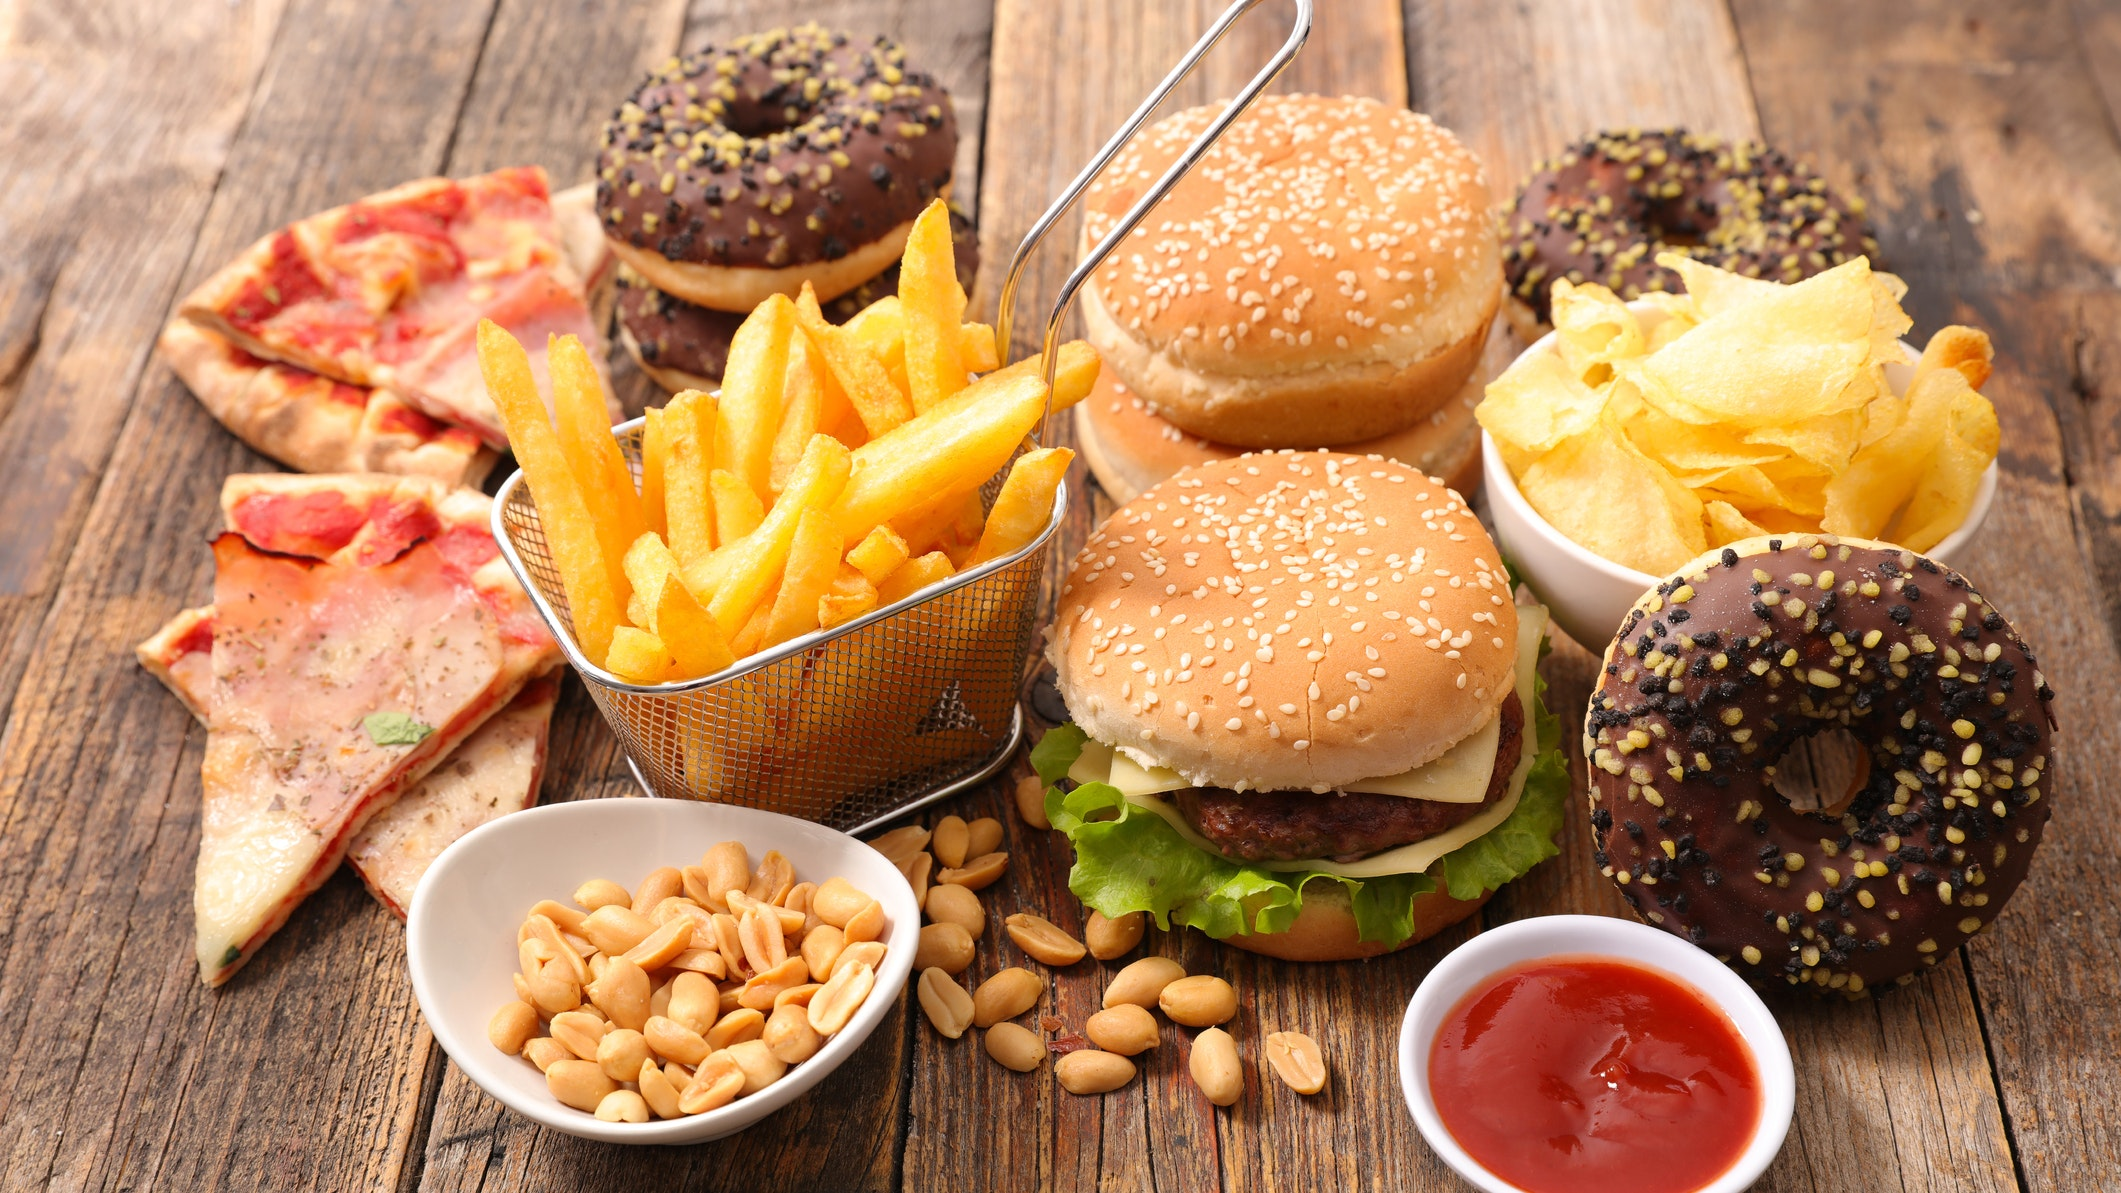 How To Make Processed Food Healthy